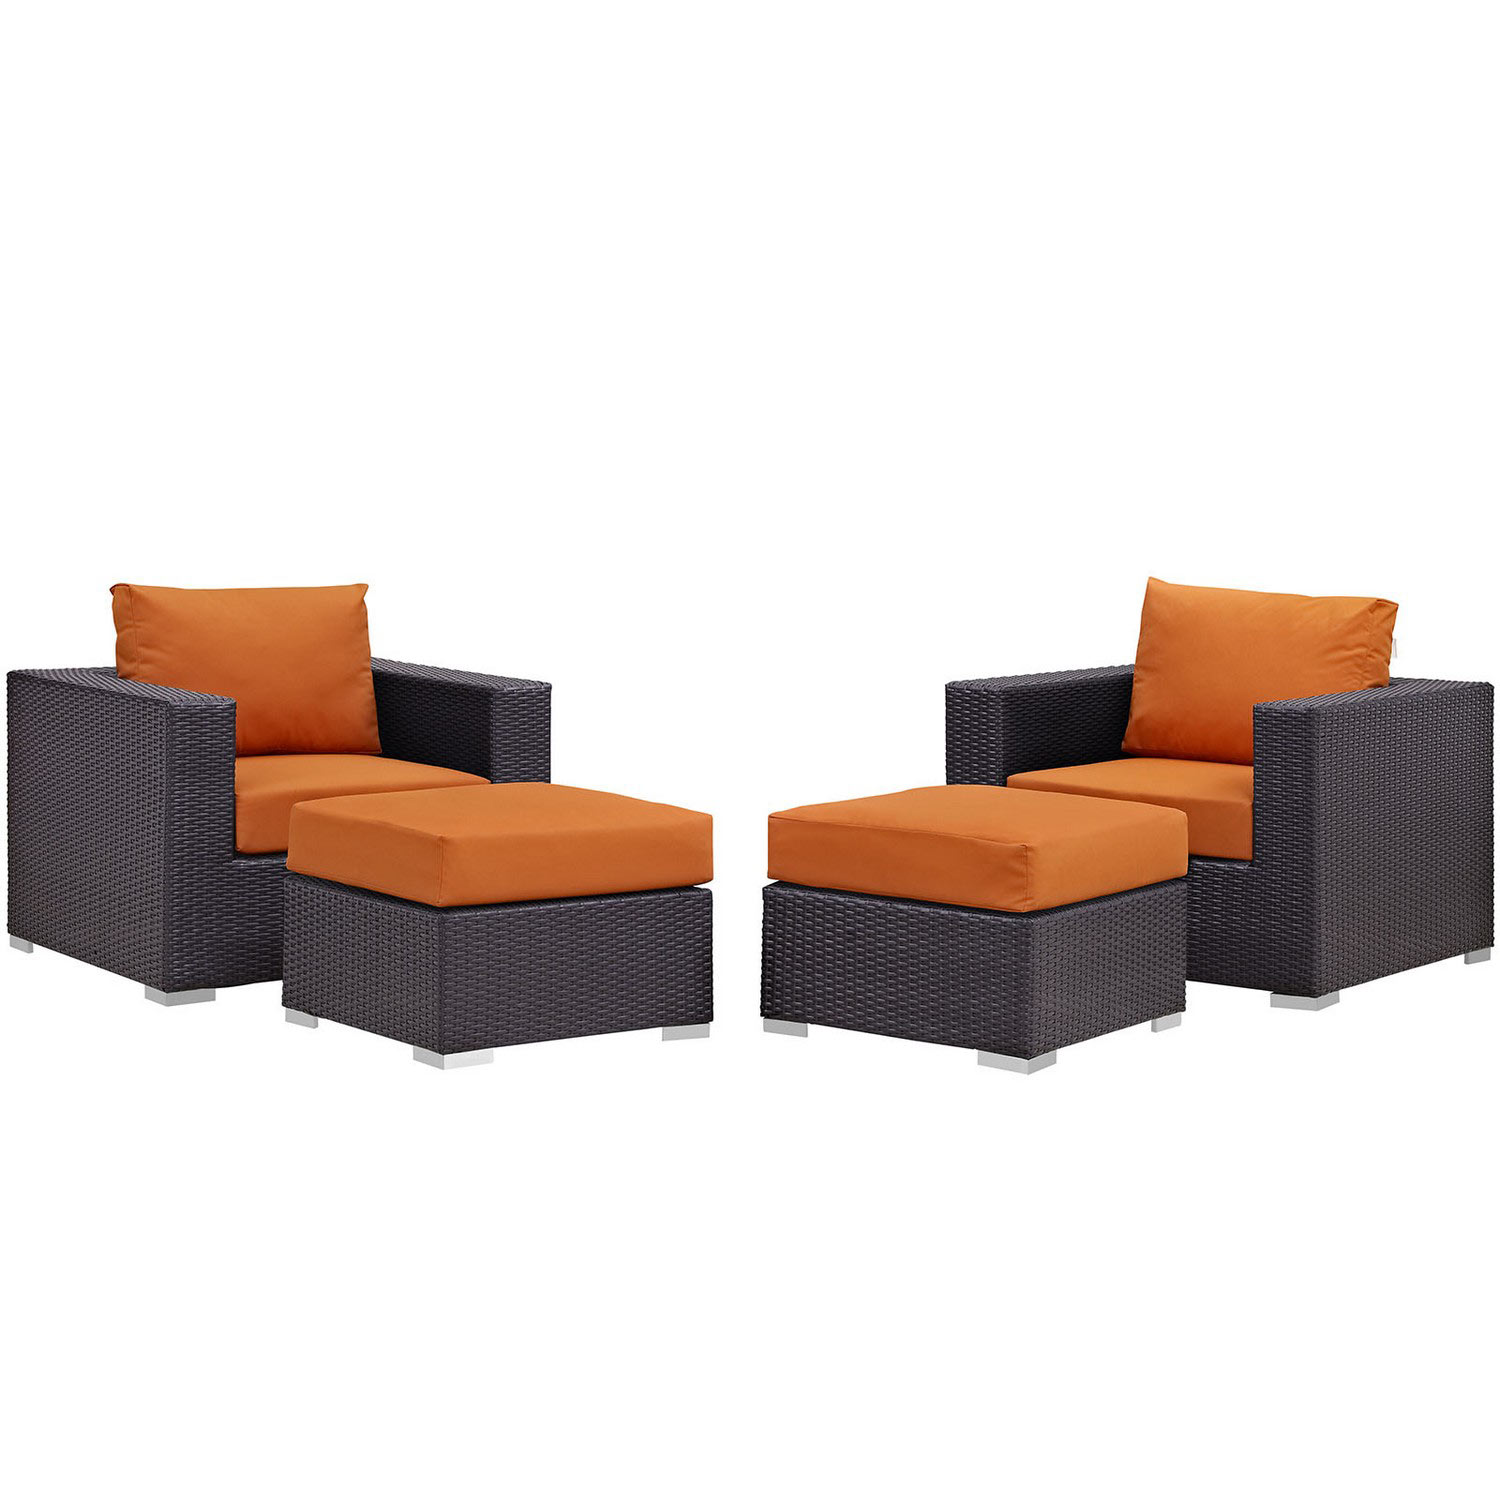 Modway Convene 4 Piece Outdoor Patio Sectional Set - Espresso Orange